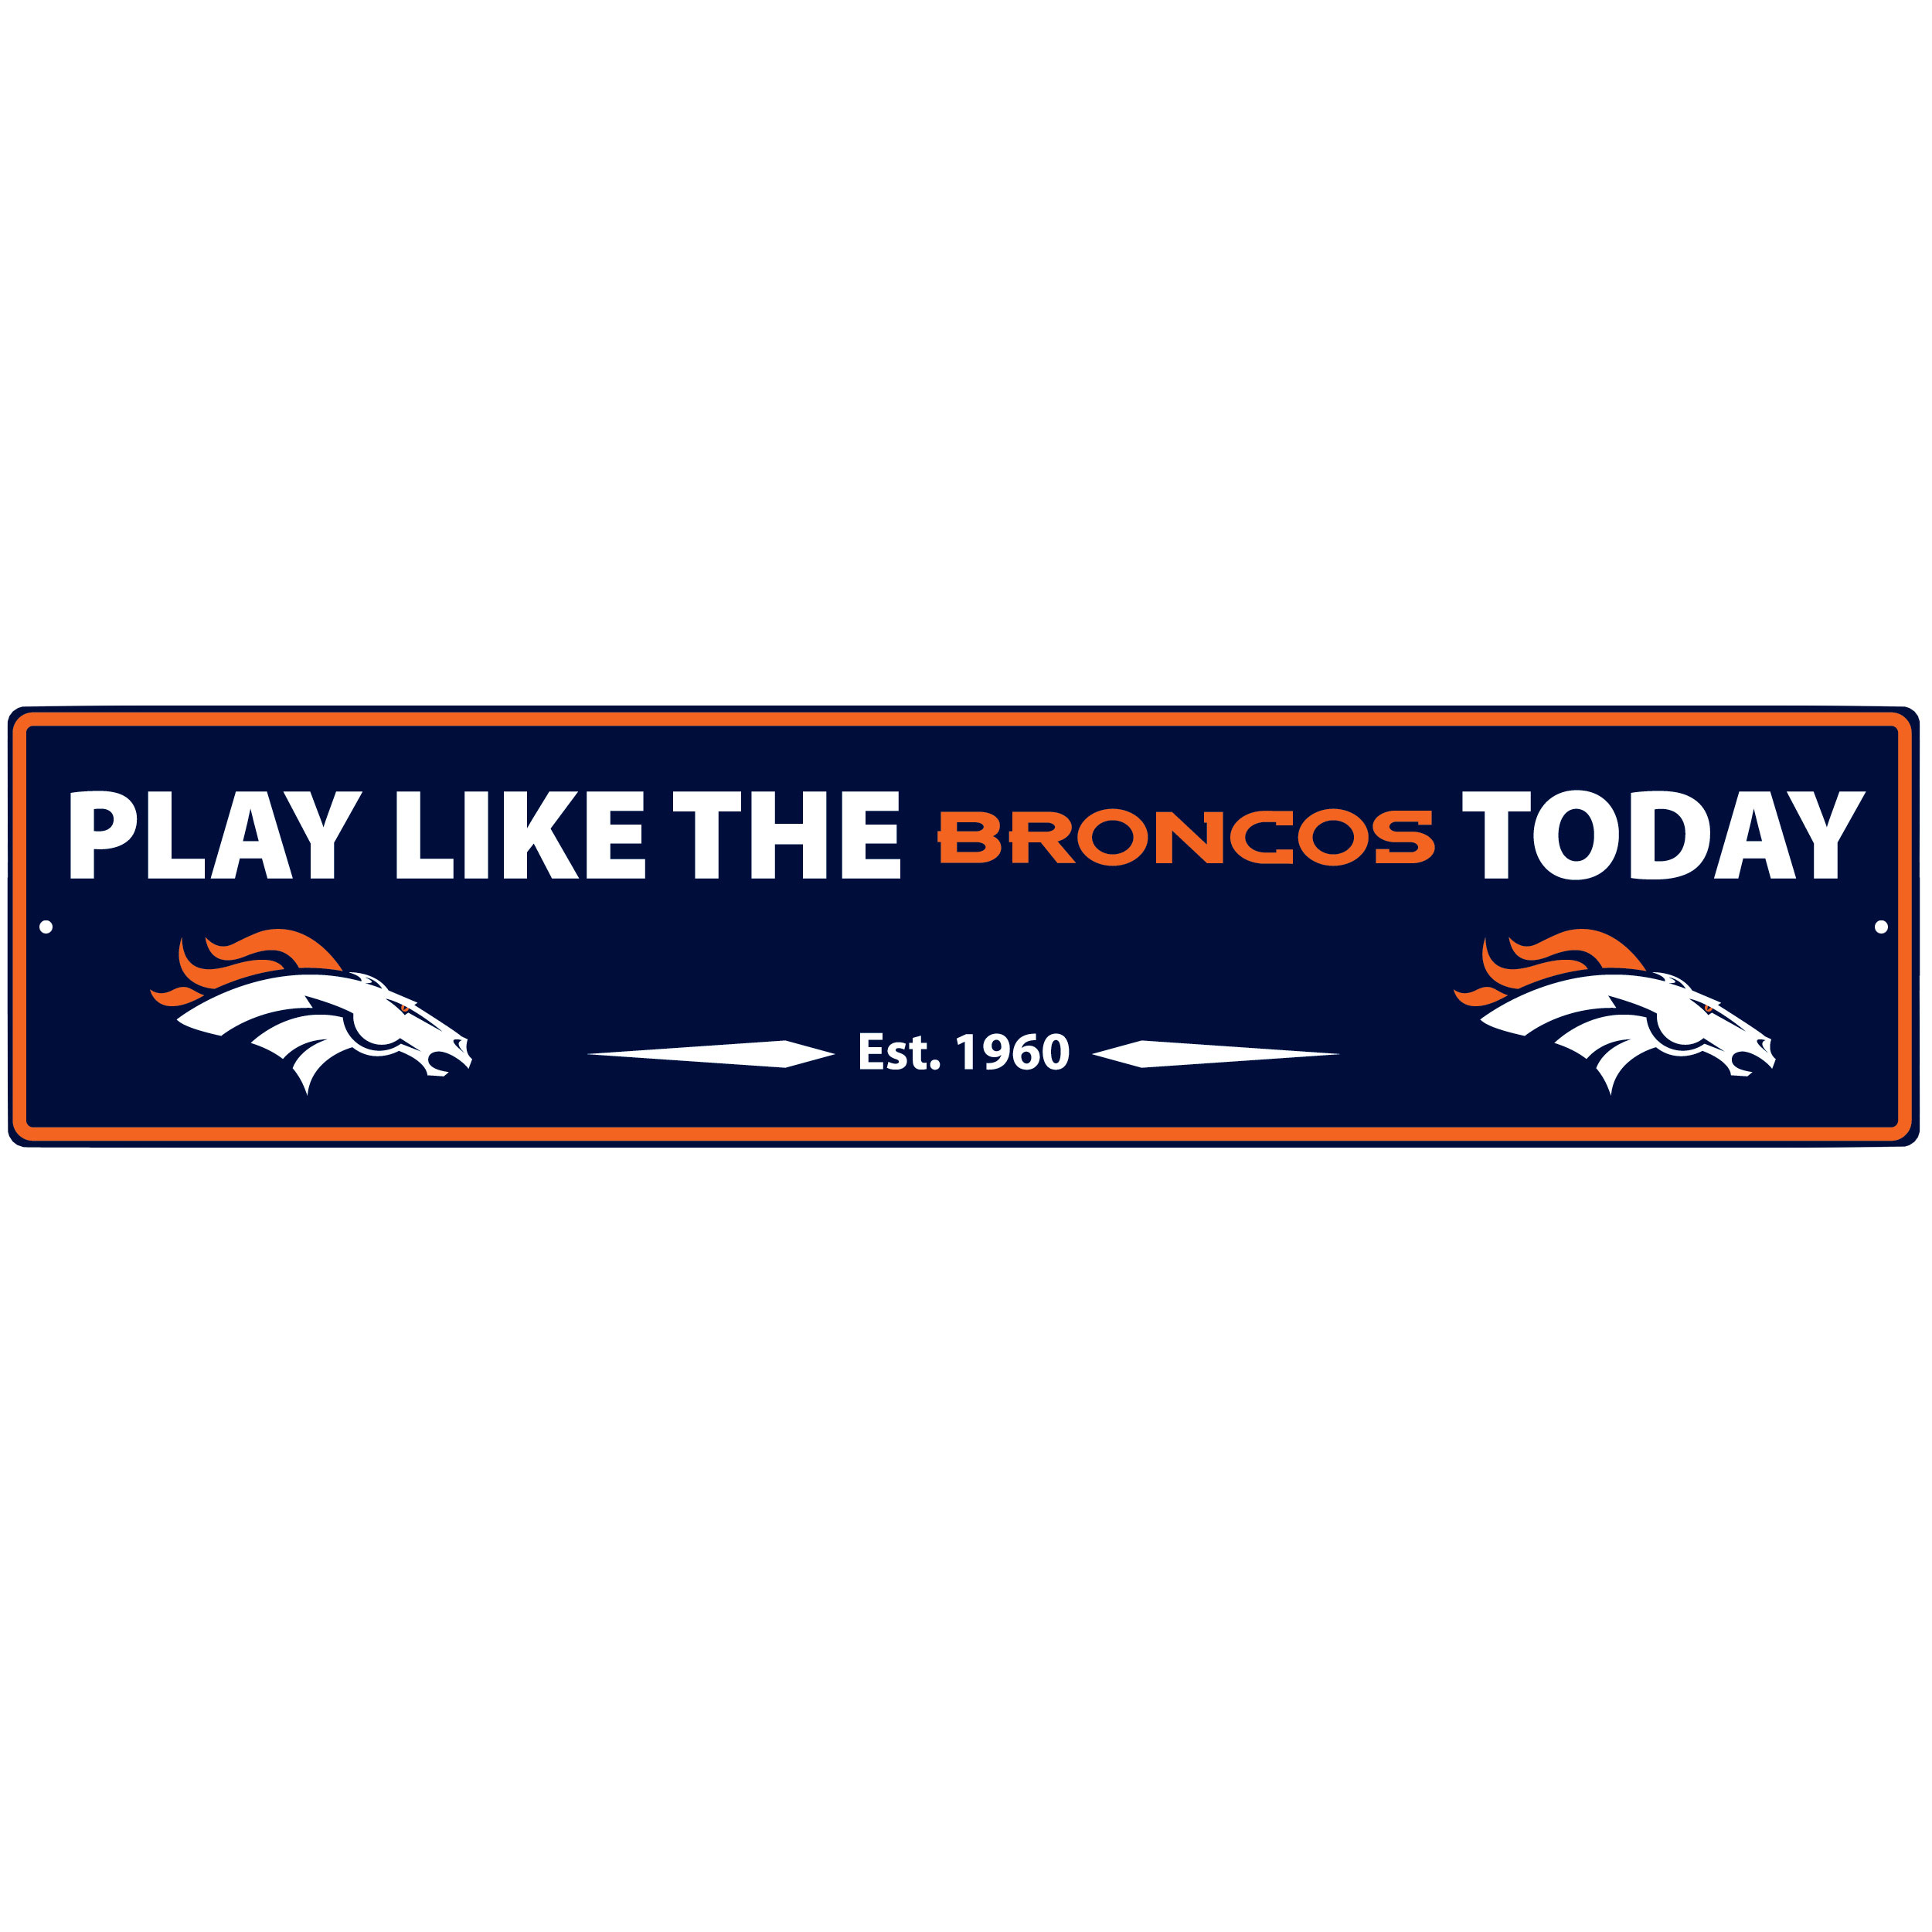 Denver Broncos Street Sign Wall Plaque - This motivational plaque is perfect for hanging over the doorway of your fan cave reminding you to play like your champion Denver Broncos! The sign is 20 inches wide and made of light-weight stamped aluminum. The bright team colors and classic design make this a must-have home décor accessory that would look great in any game room, living room or office!